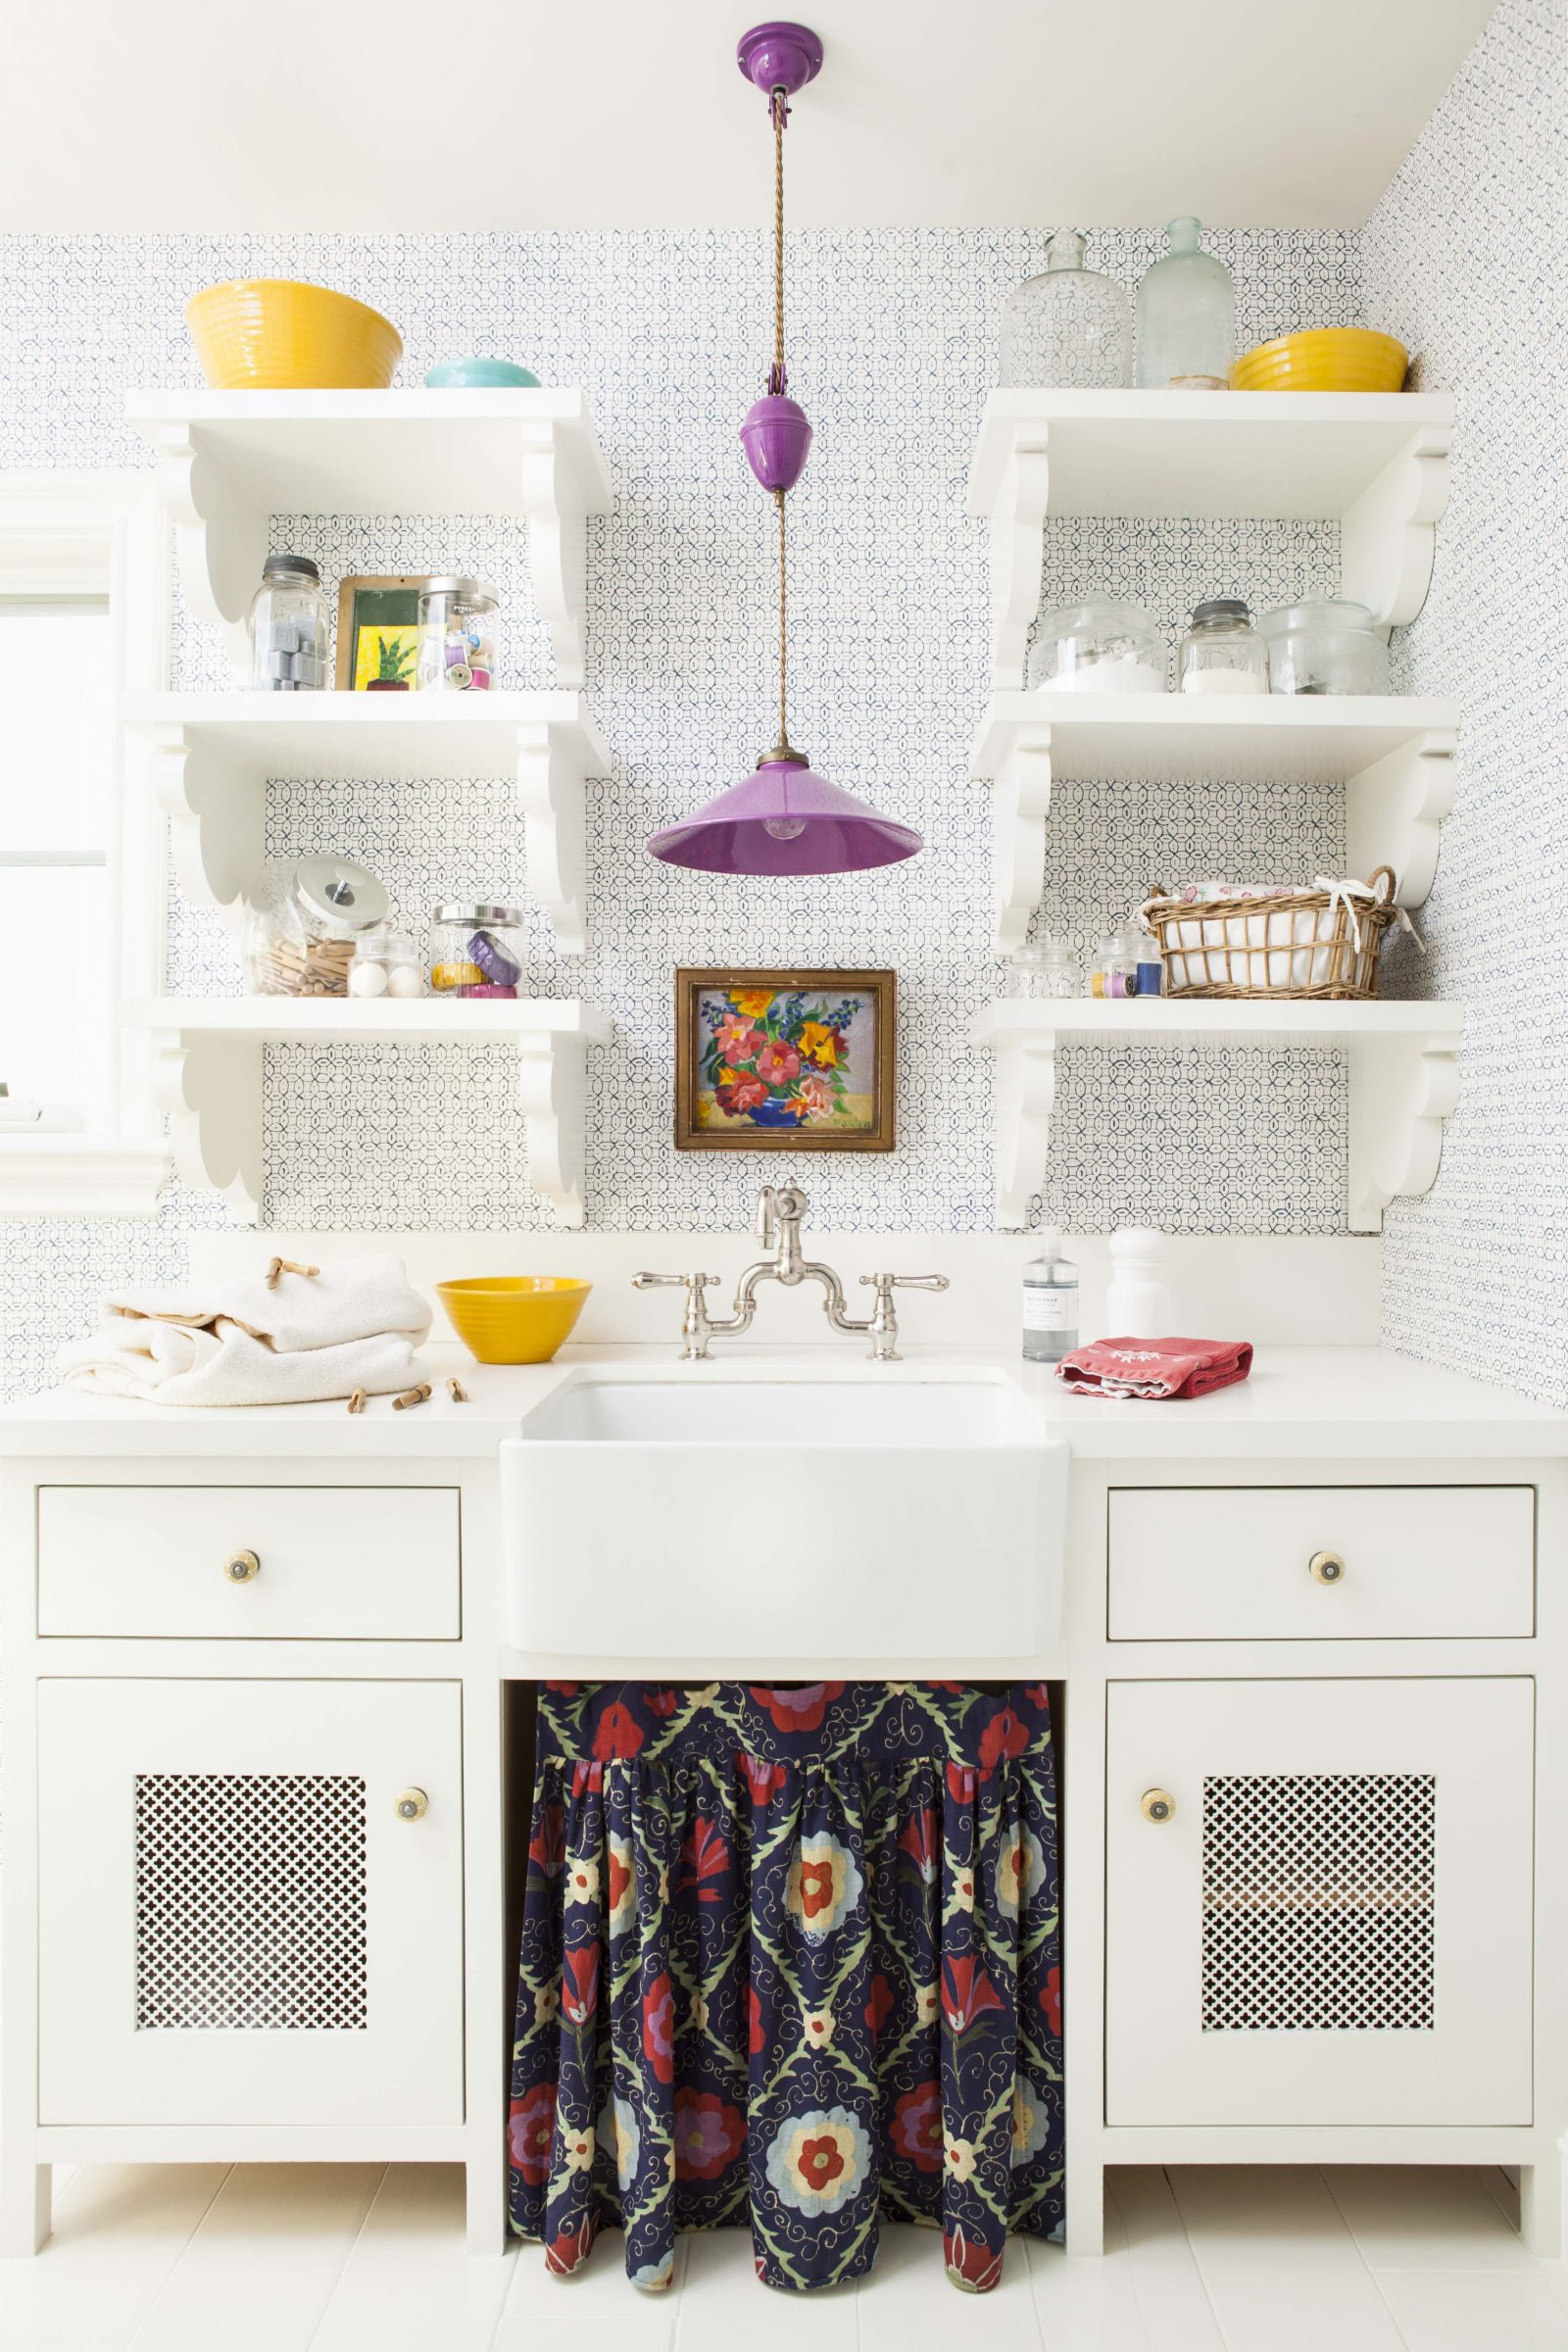 How To Decorate With Open Shelving In Your Kitchen Flea Market Finds Home And Garden Decorating Ideas By Expert Interior Decorators